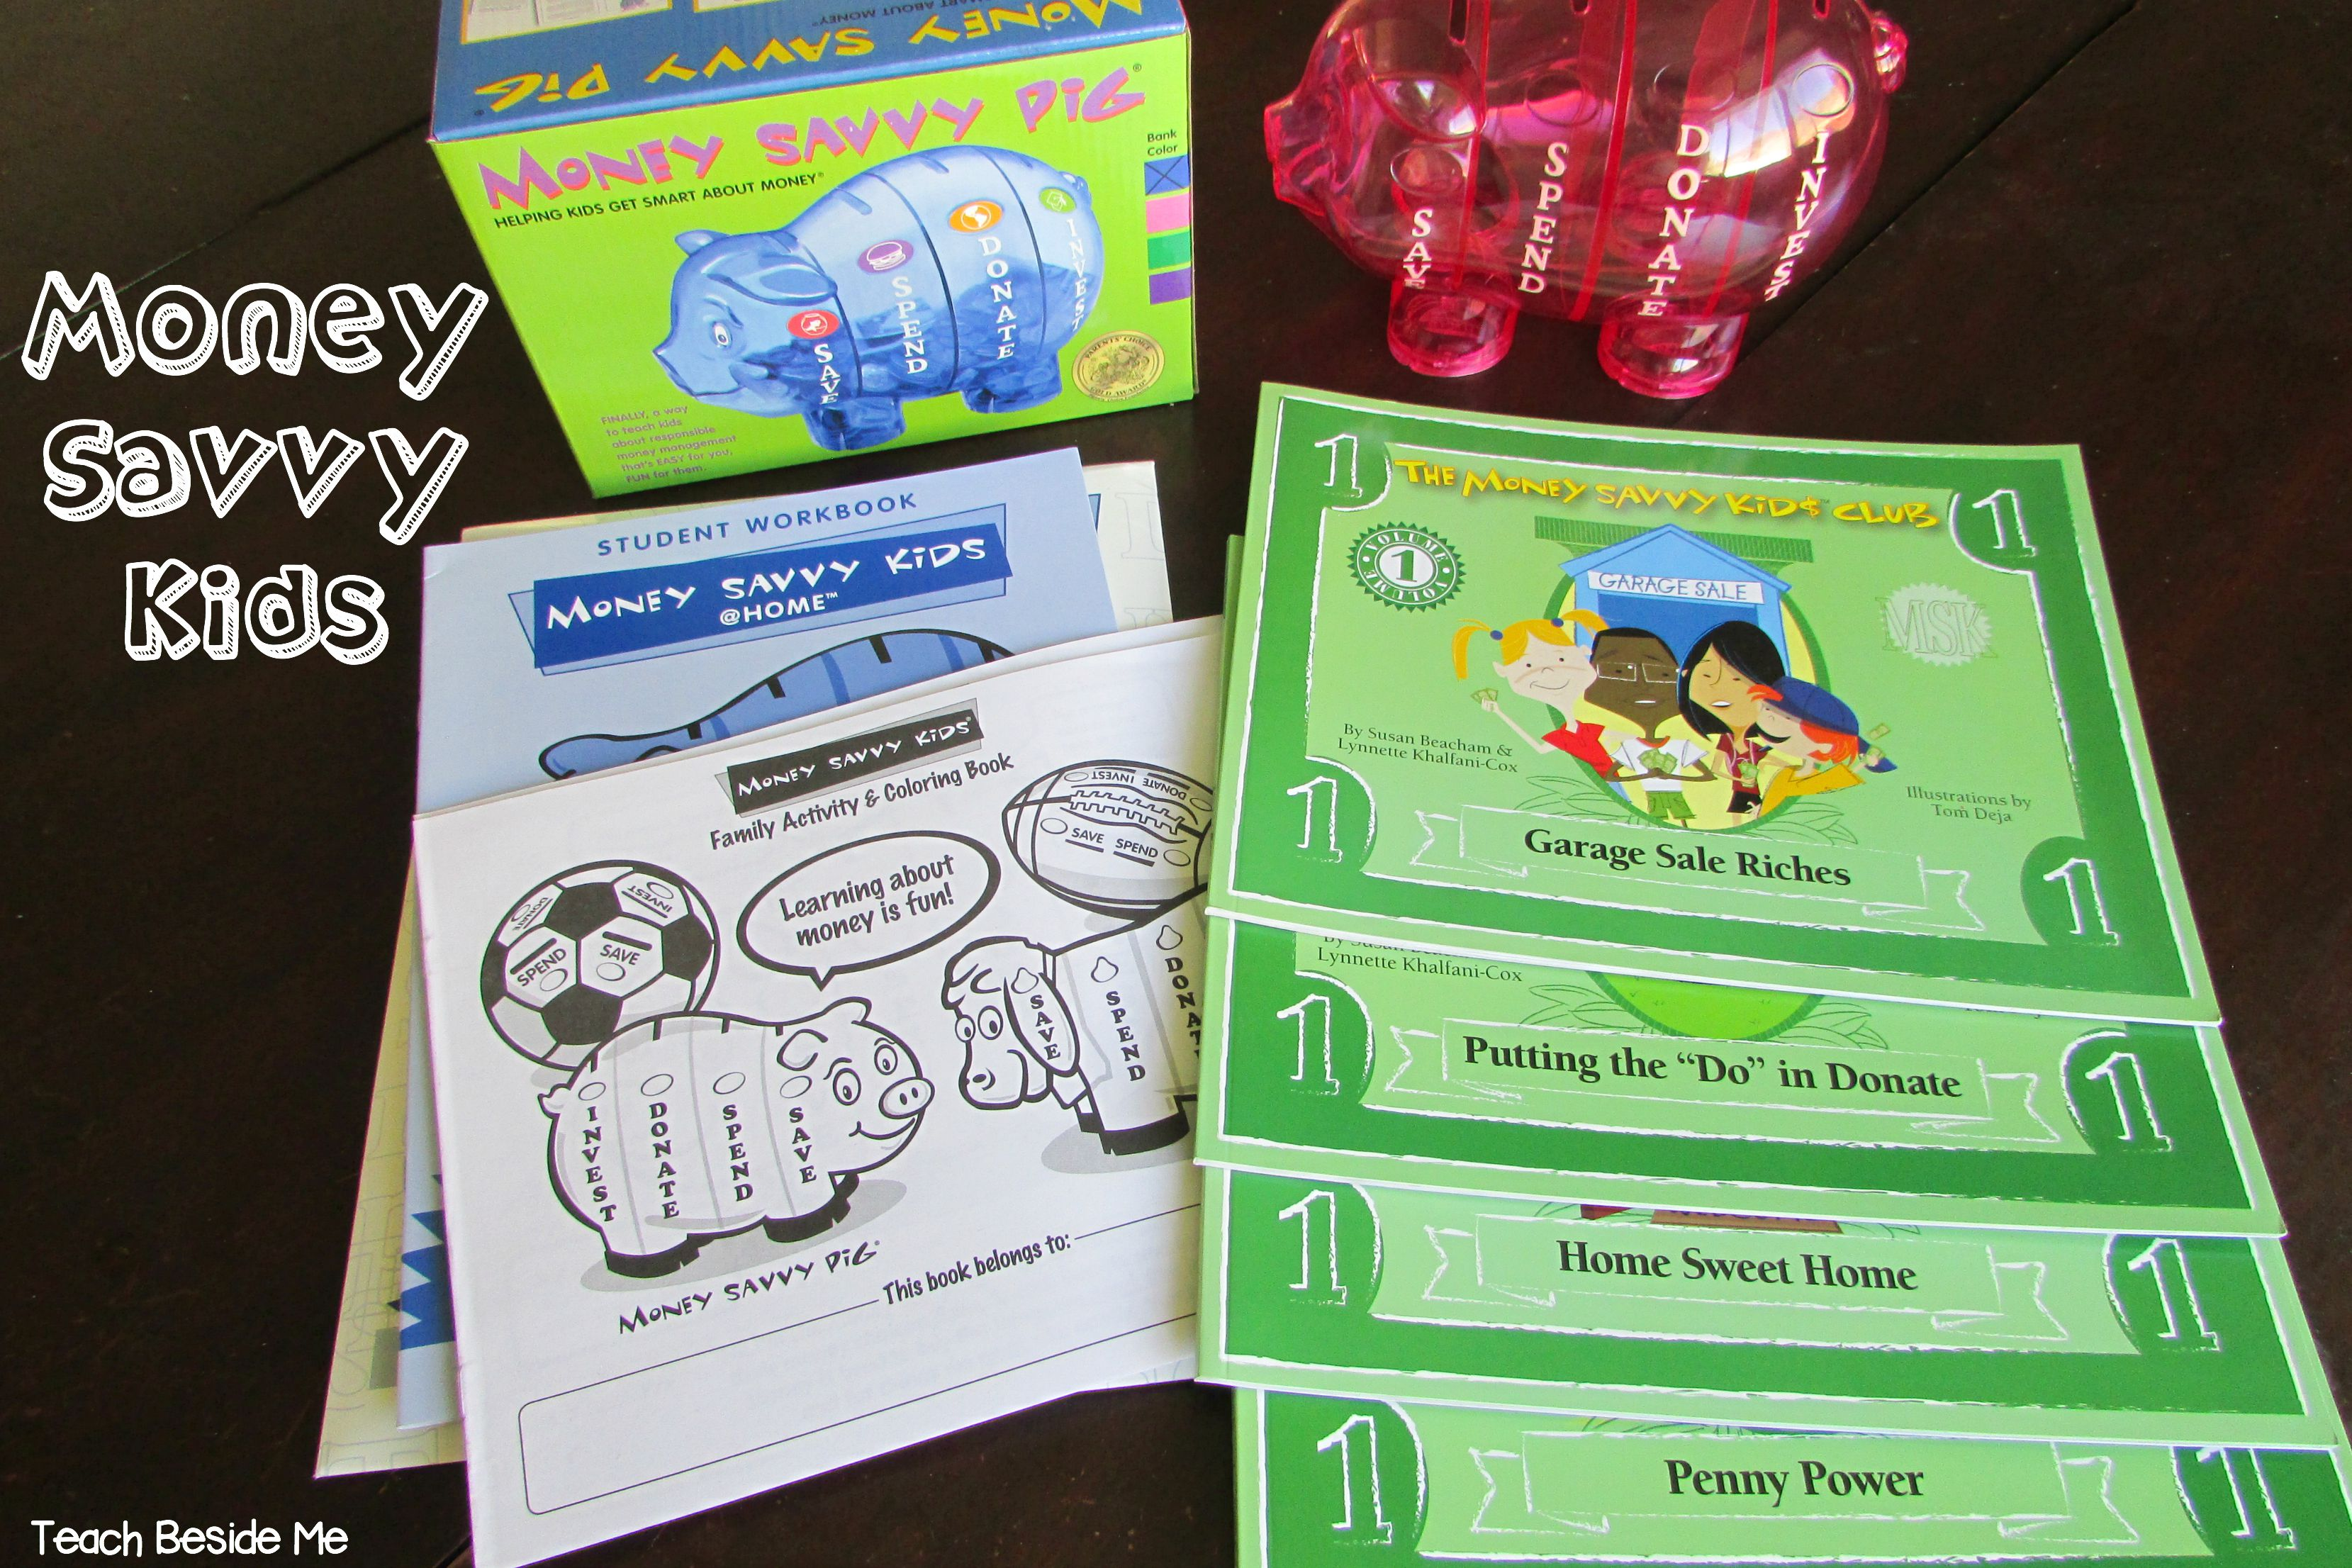 Money Savvy Kids: Finance Curriculum